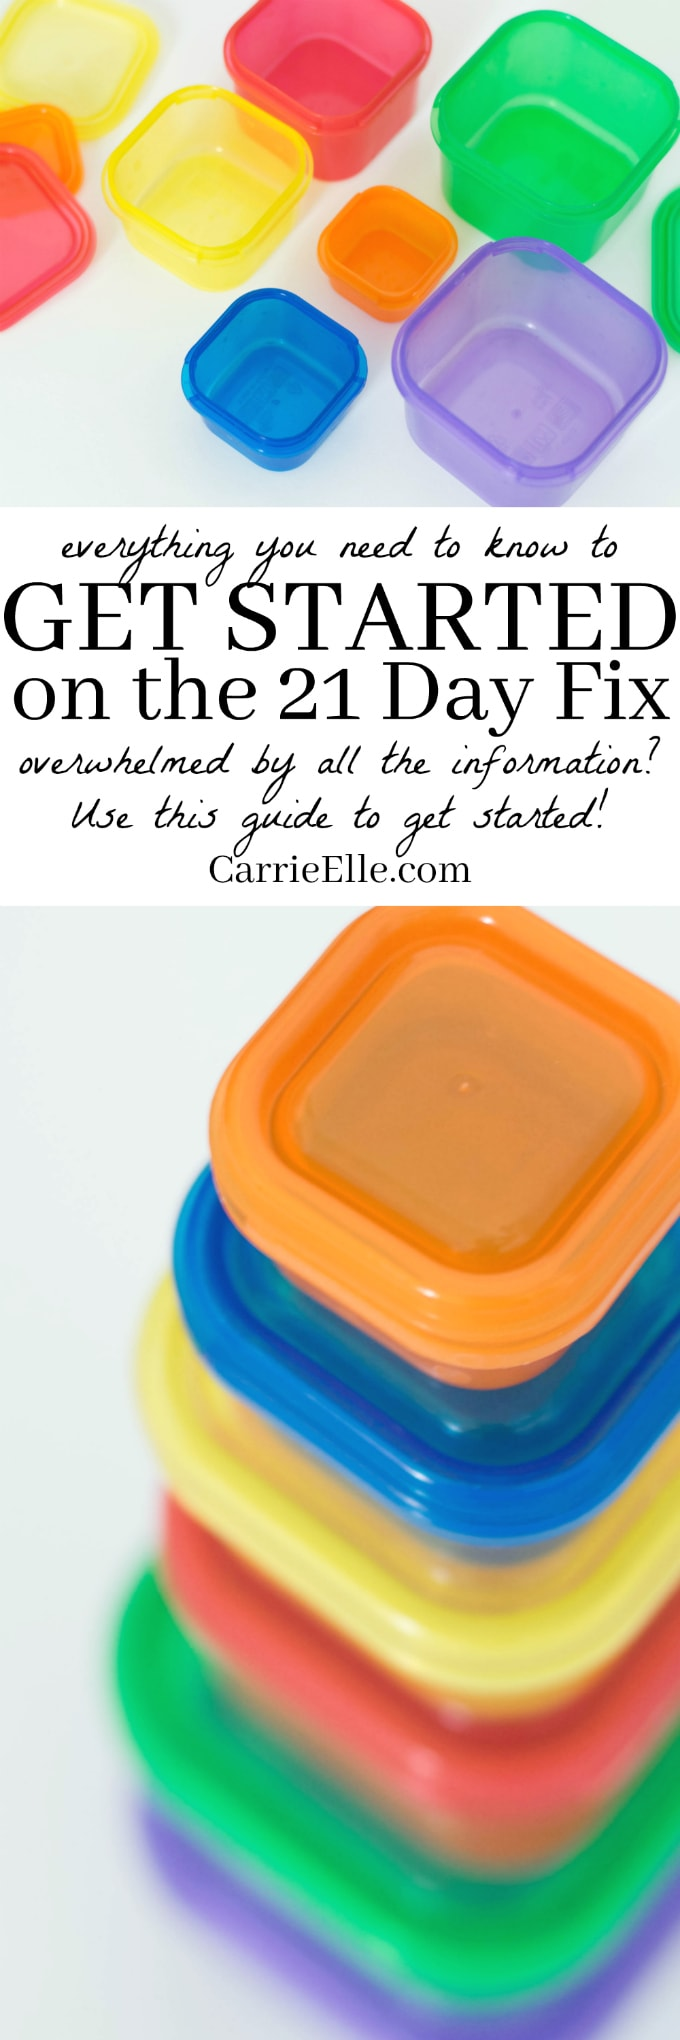 How to Get Started on the 21 Day Fix